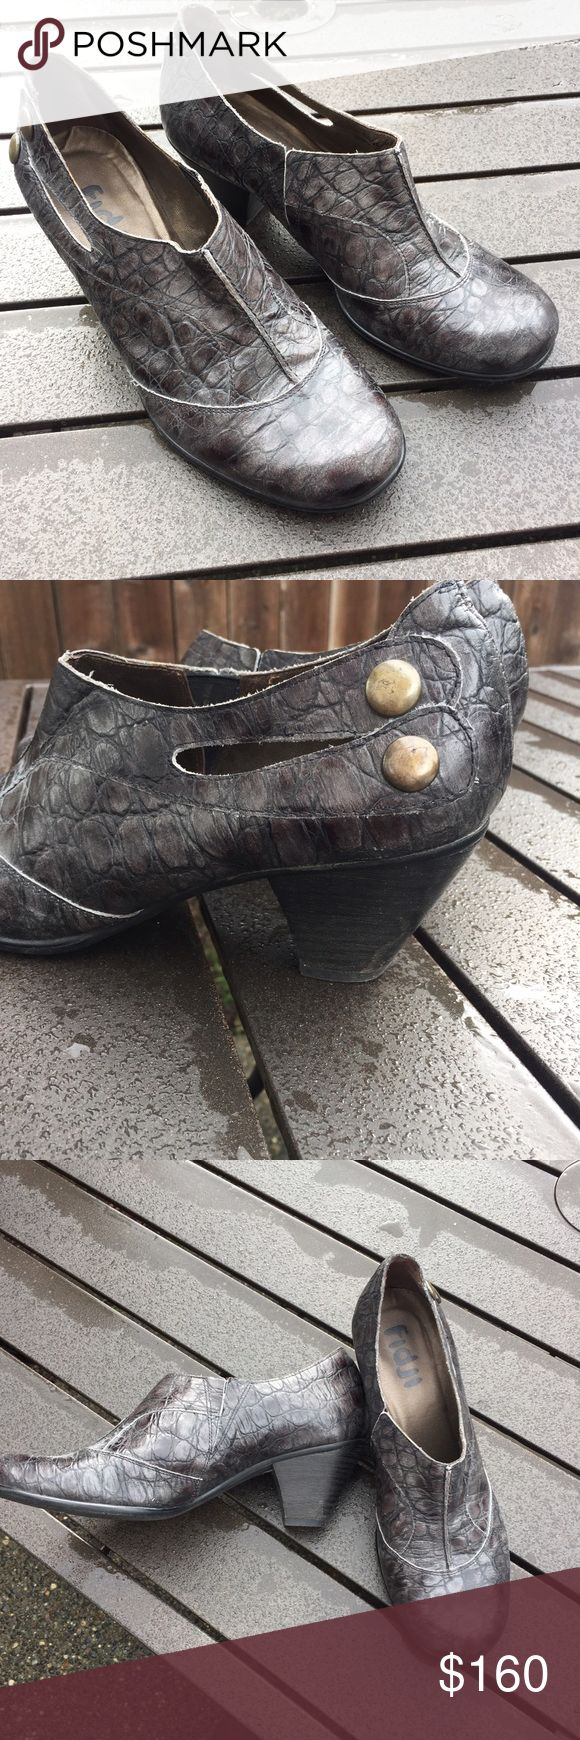 Worn once Fidji booties These were worn one time and and in excellent condition! Super cute on and perfect for fall. Size 39 runs 8/8.5/9 for US sizes technically. They fit pretty accurate at a 9 to me. fidji Shoes Ankle Boots & Booties